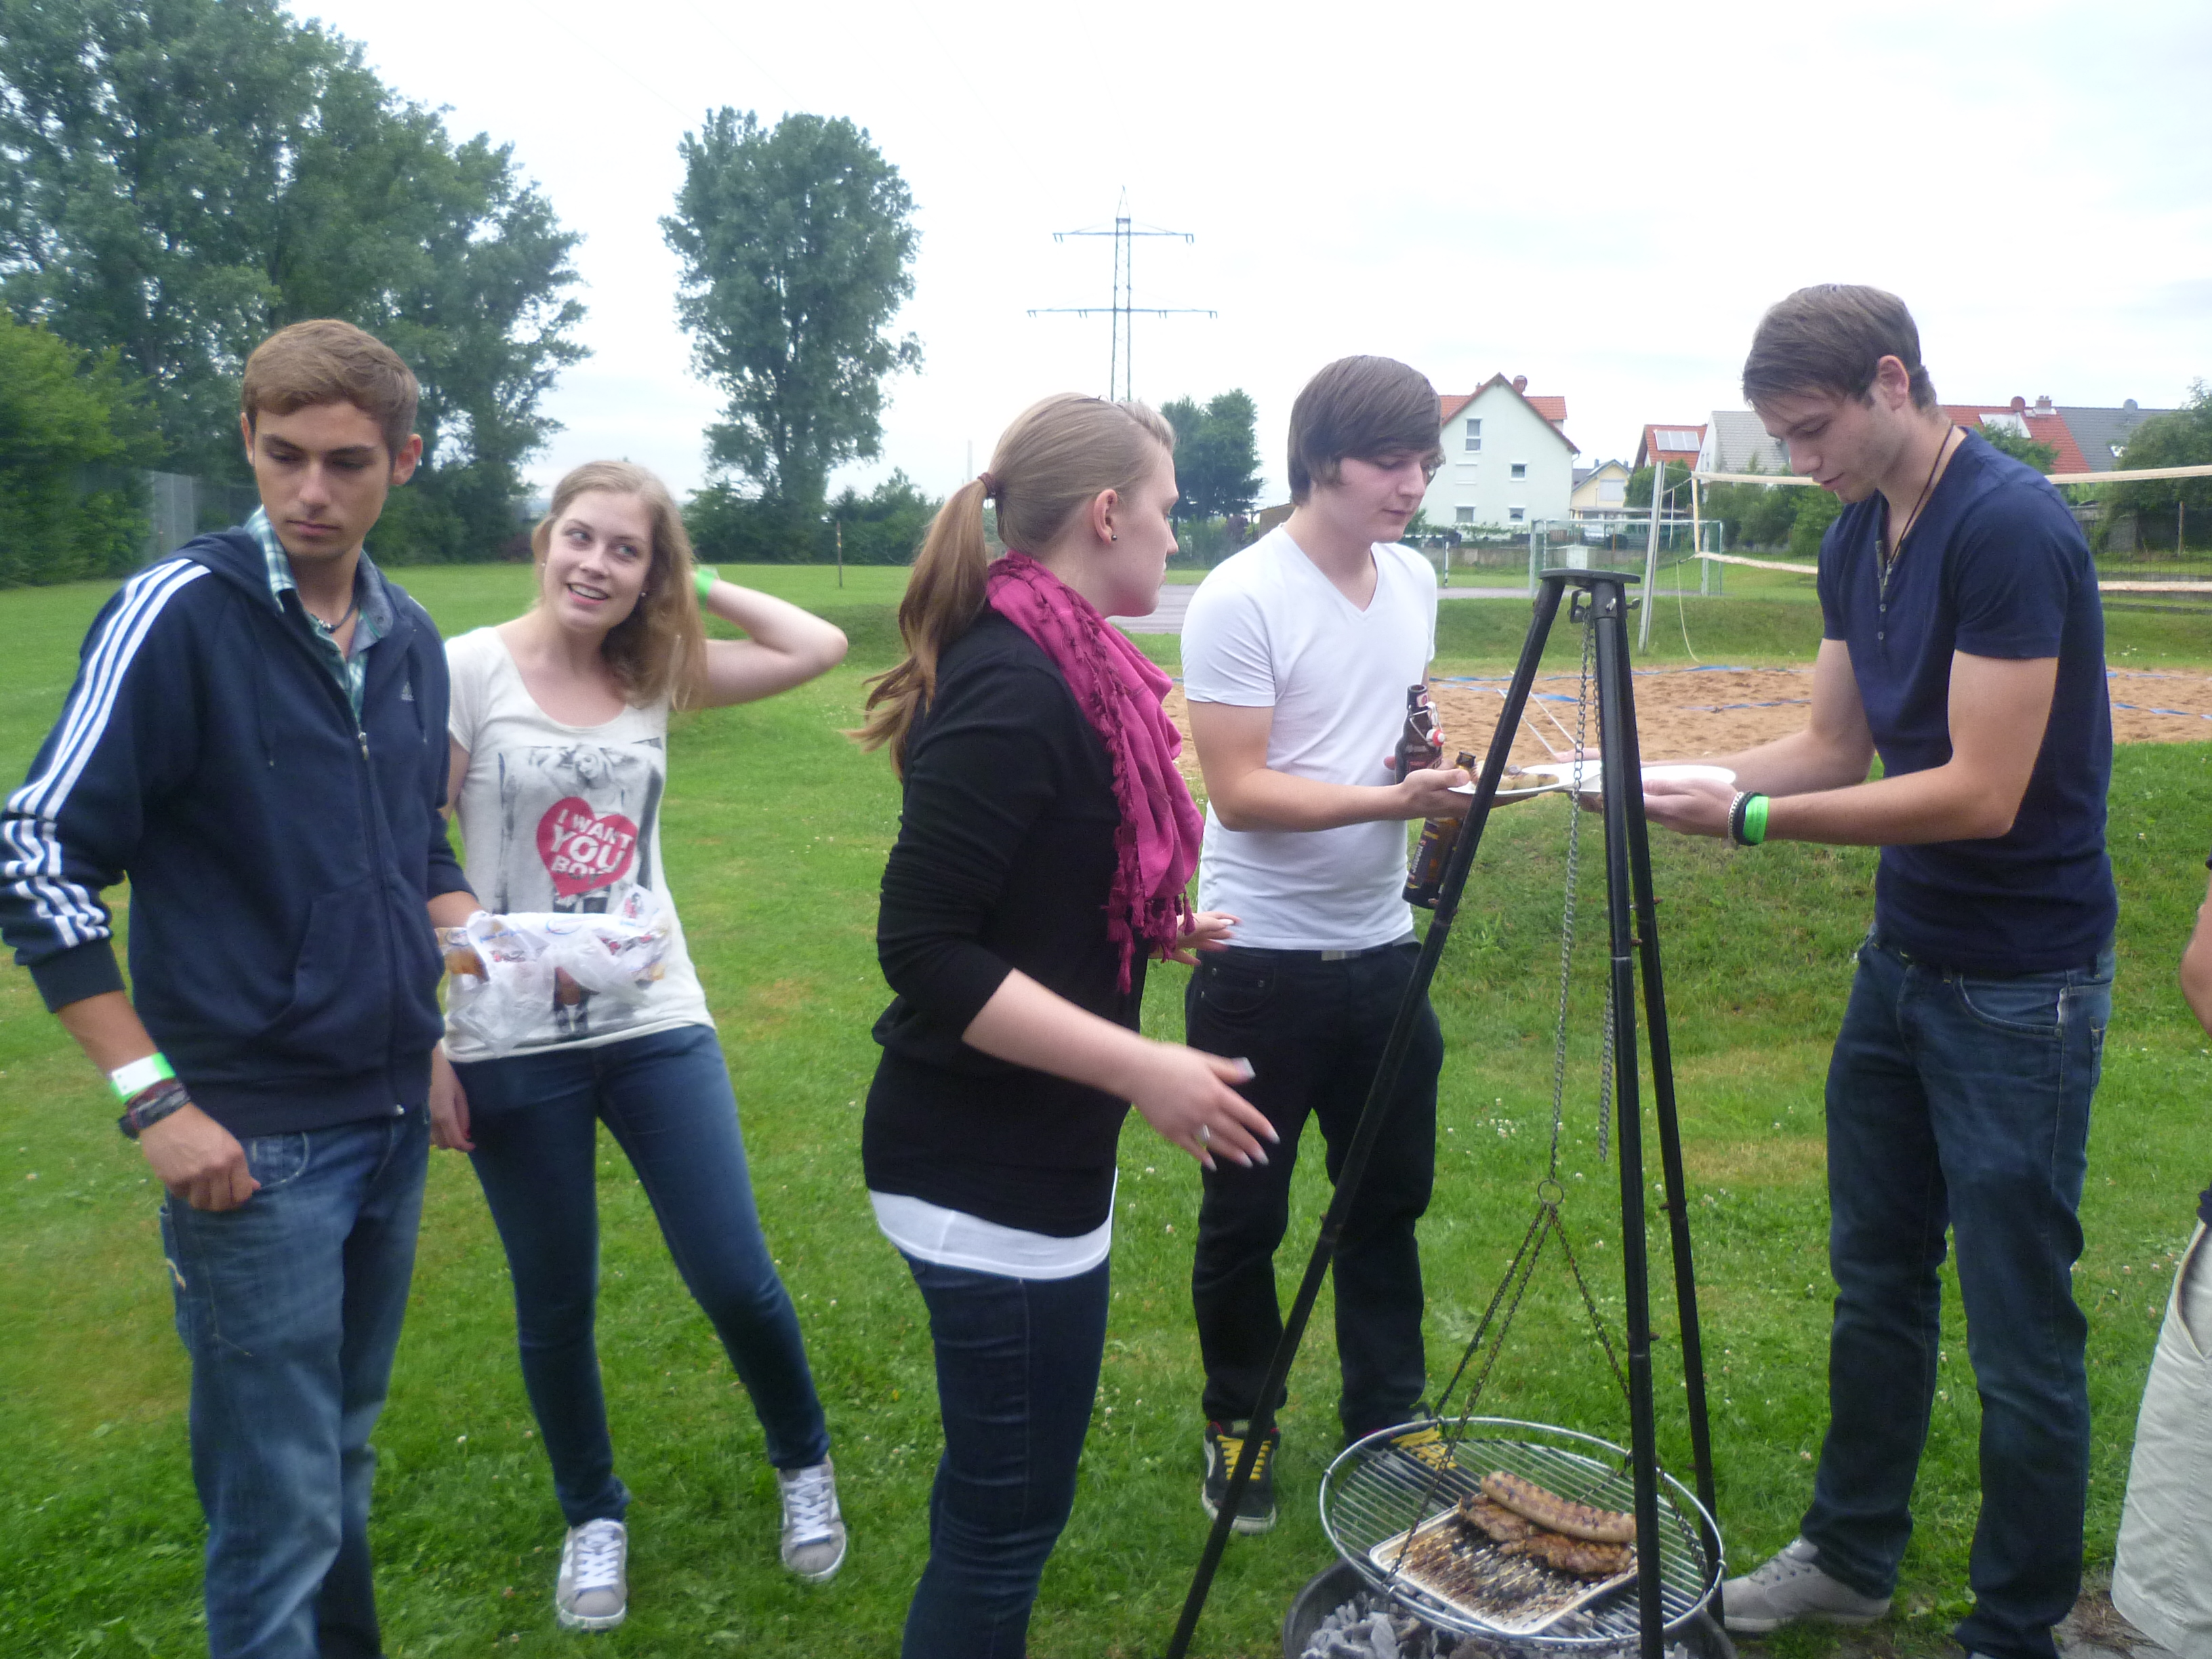 pic_grillfeier2012_02